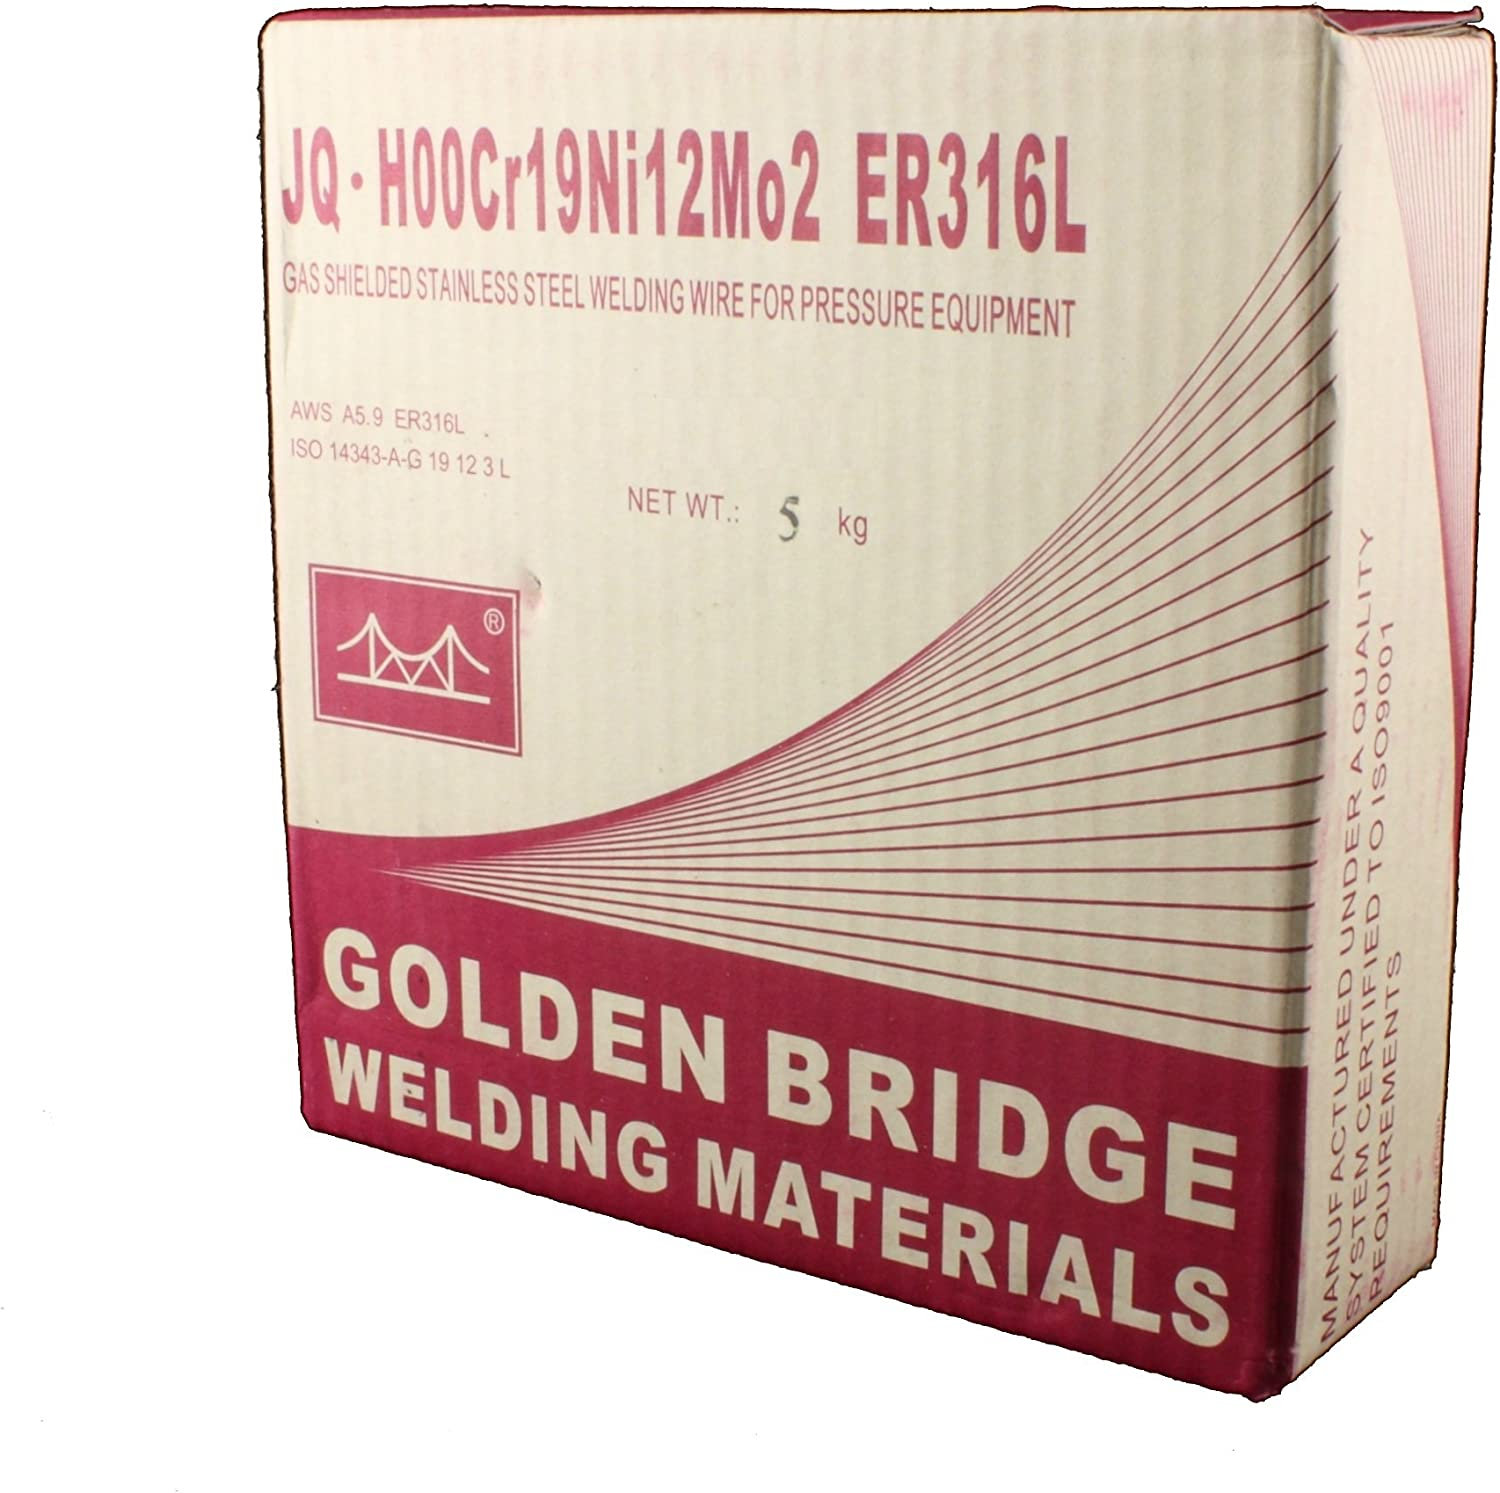 ER316L 11 Lb x 0.030 MIG Stainless Steel Welding Wire